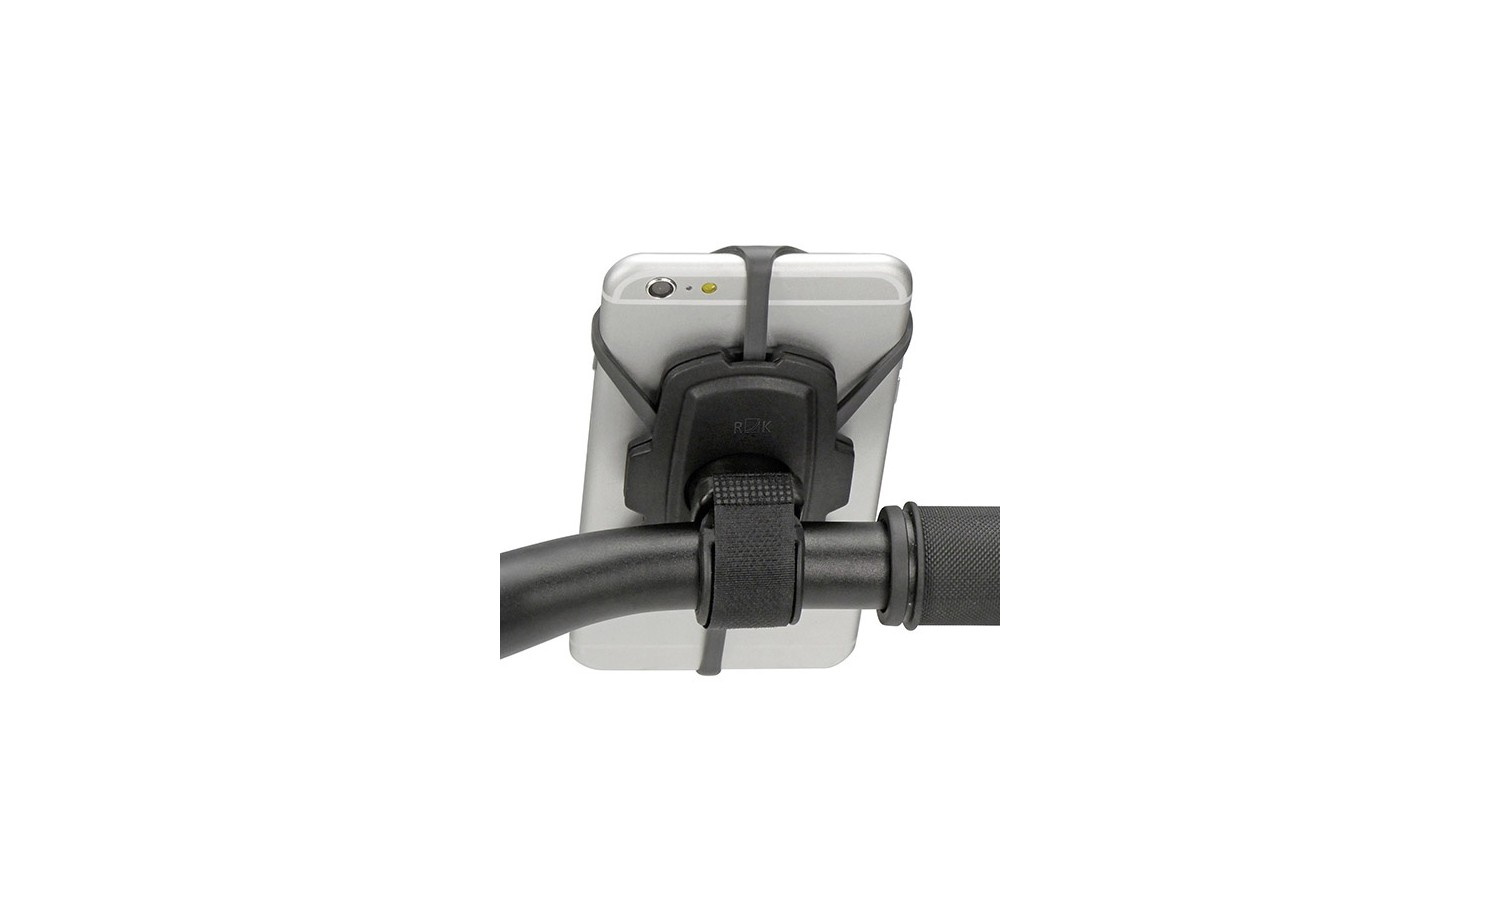 KlickFix PhonePad Loop Smartphone holder